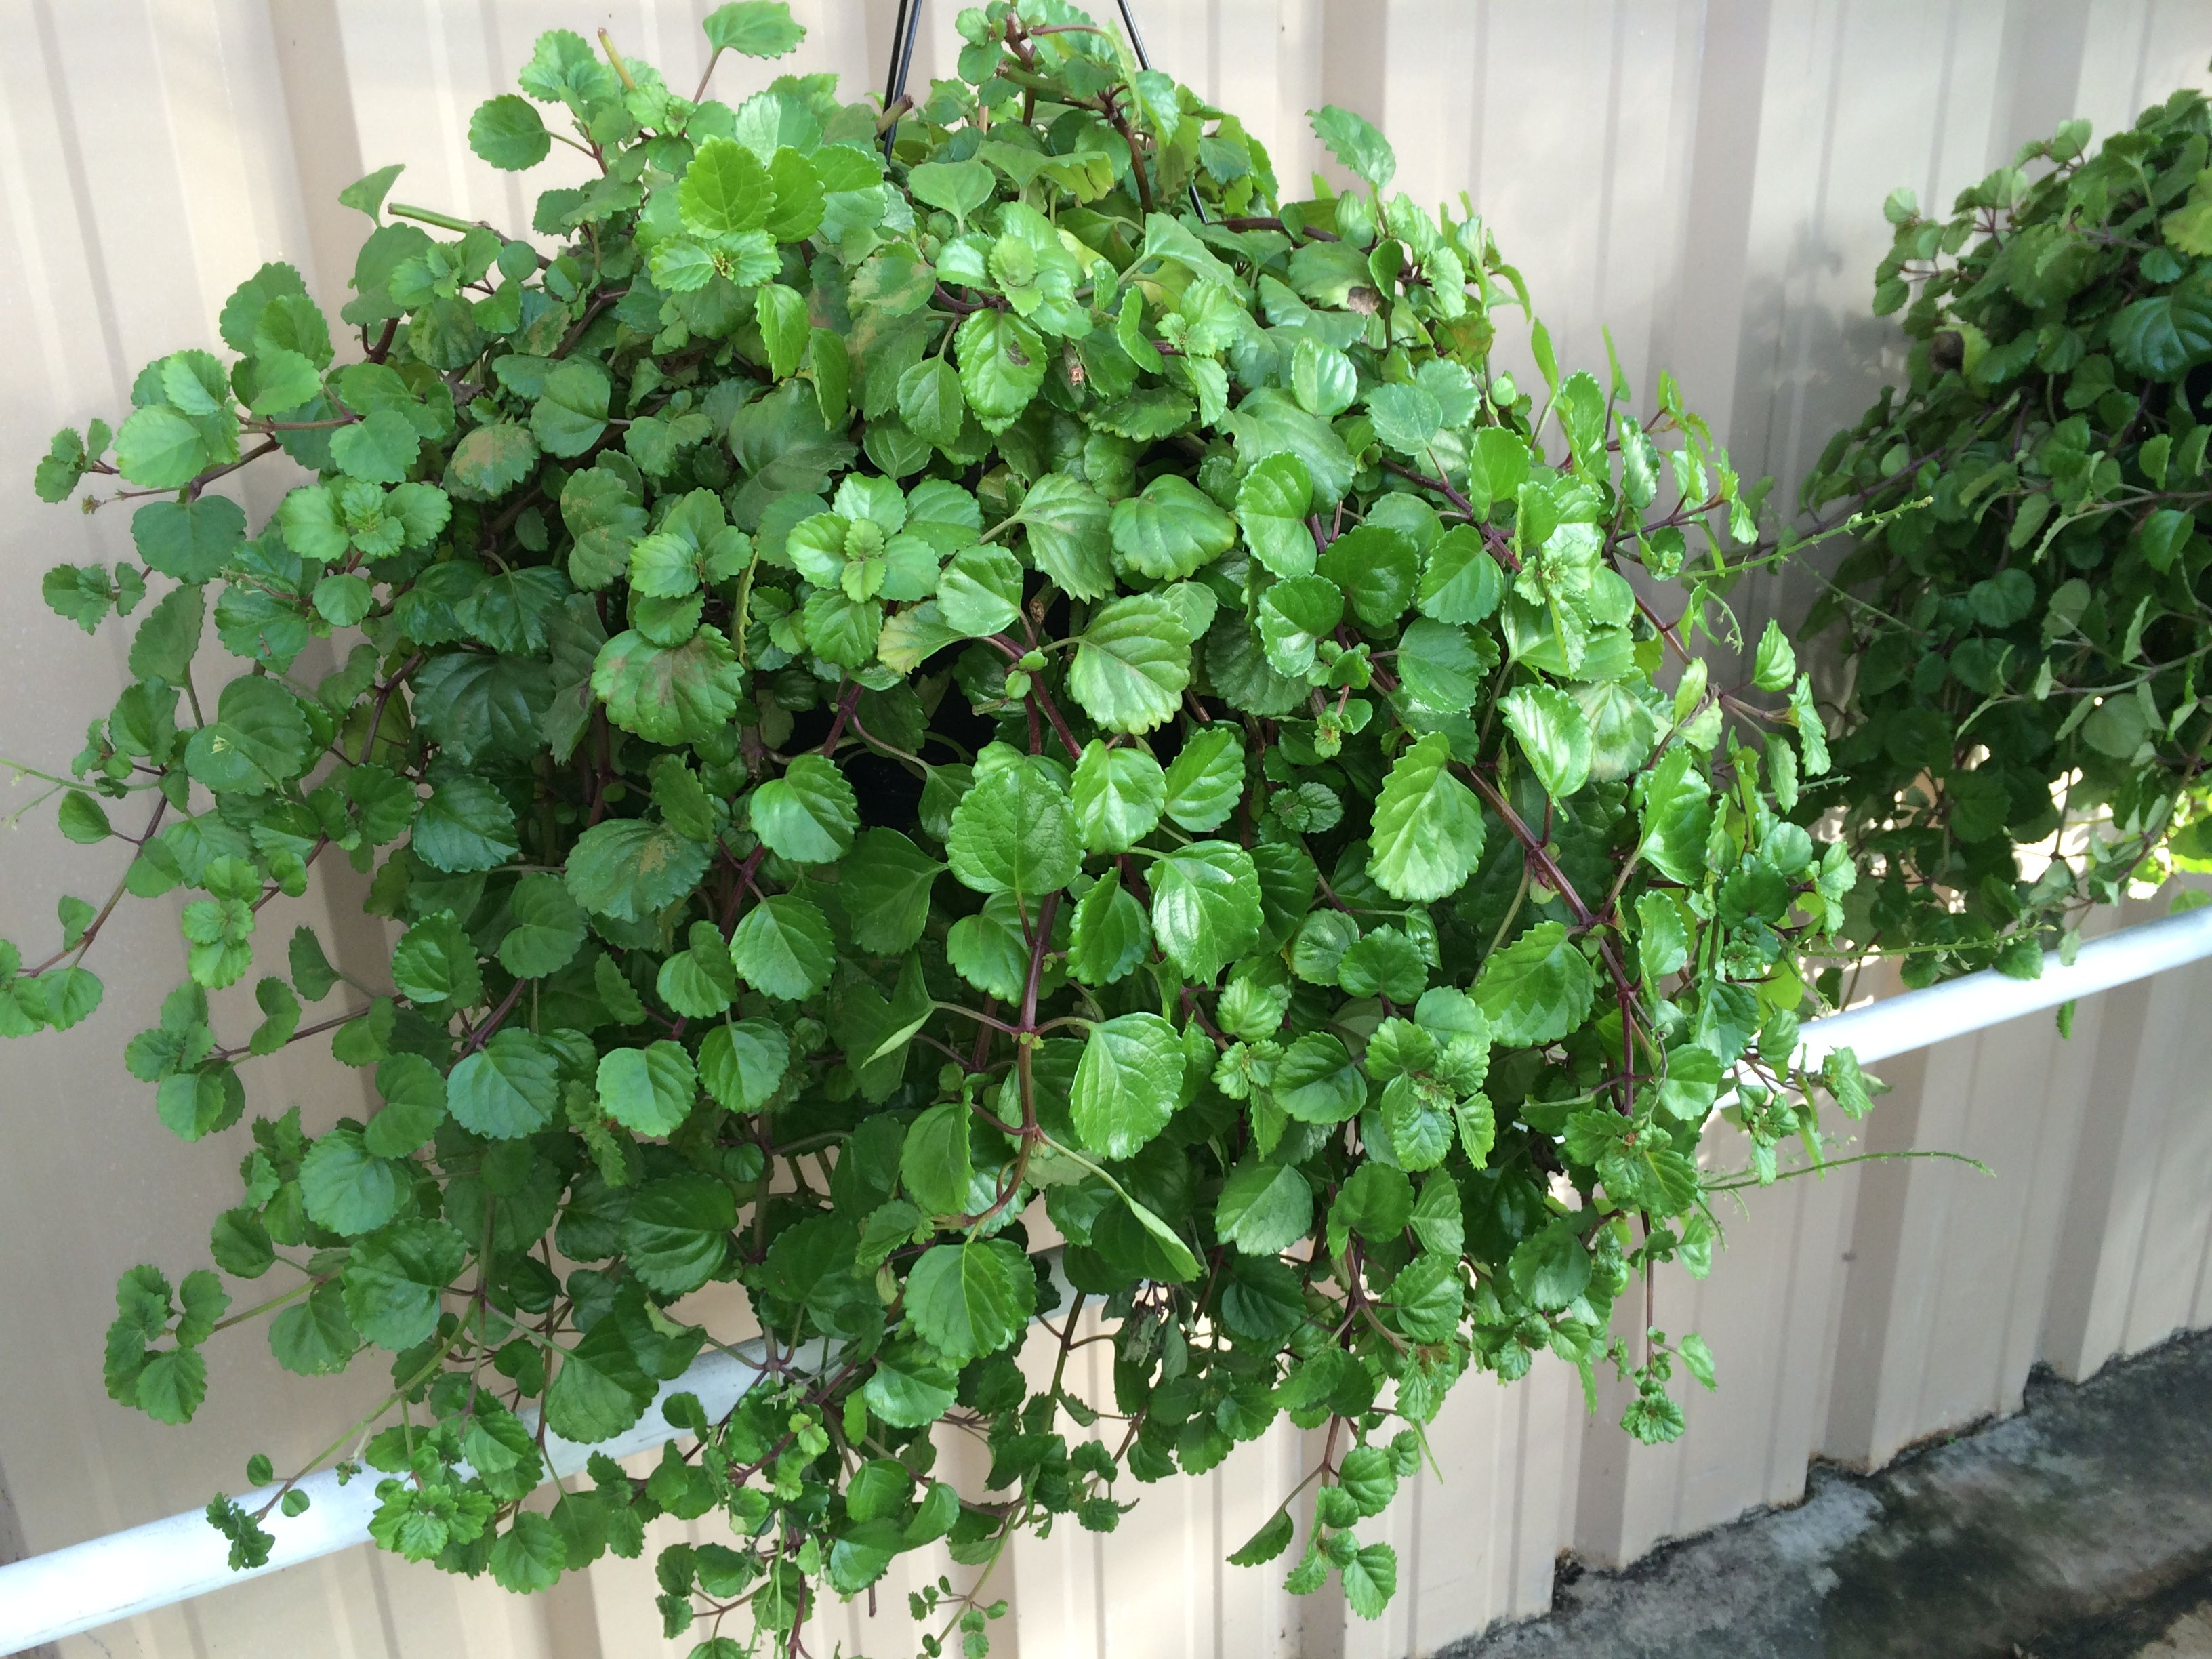 Swedish Ivy An Old Time Favorite Trim It Monthly To Keep It S Rounded Shape The Cuttings Can Be Rooted House Plants Indoor Container Plants Indoor Plants